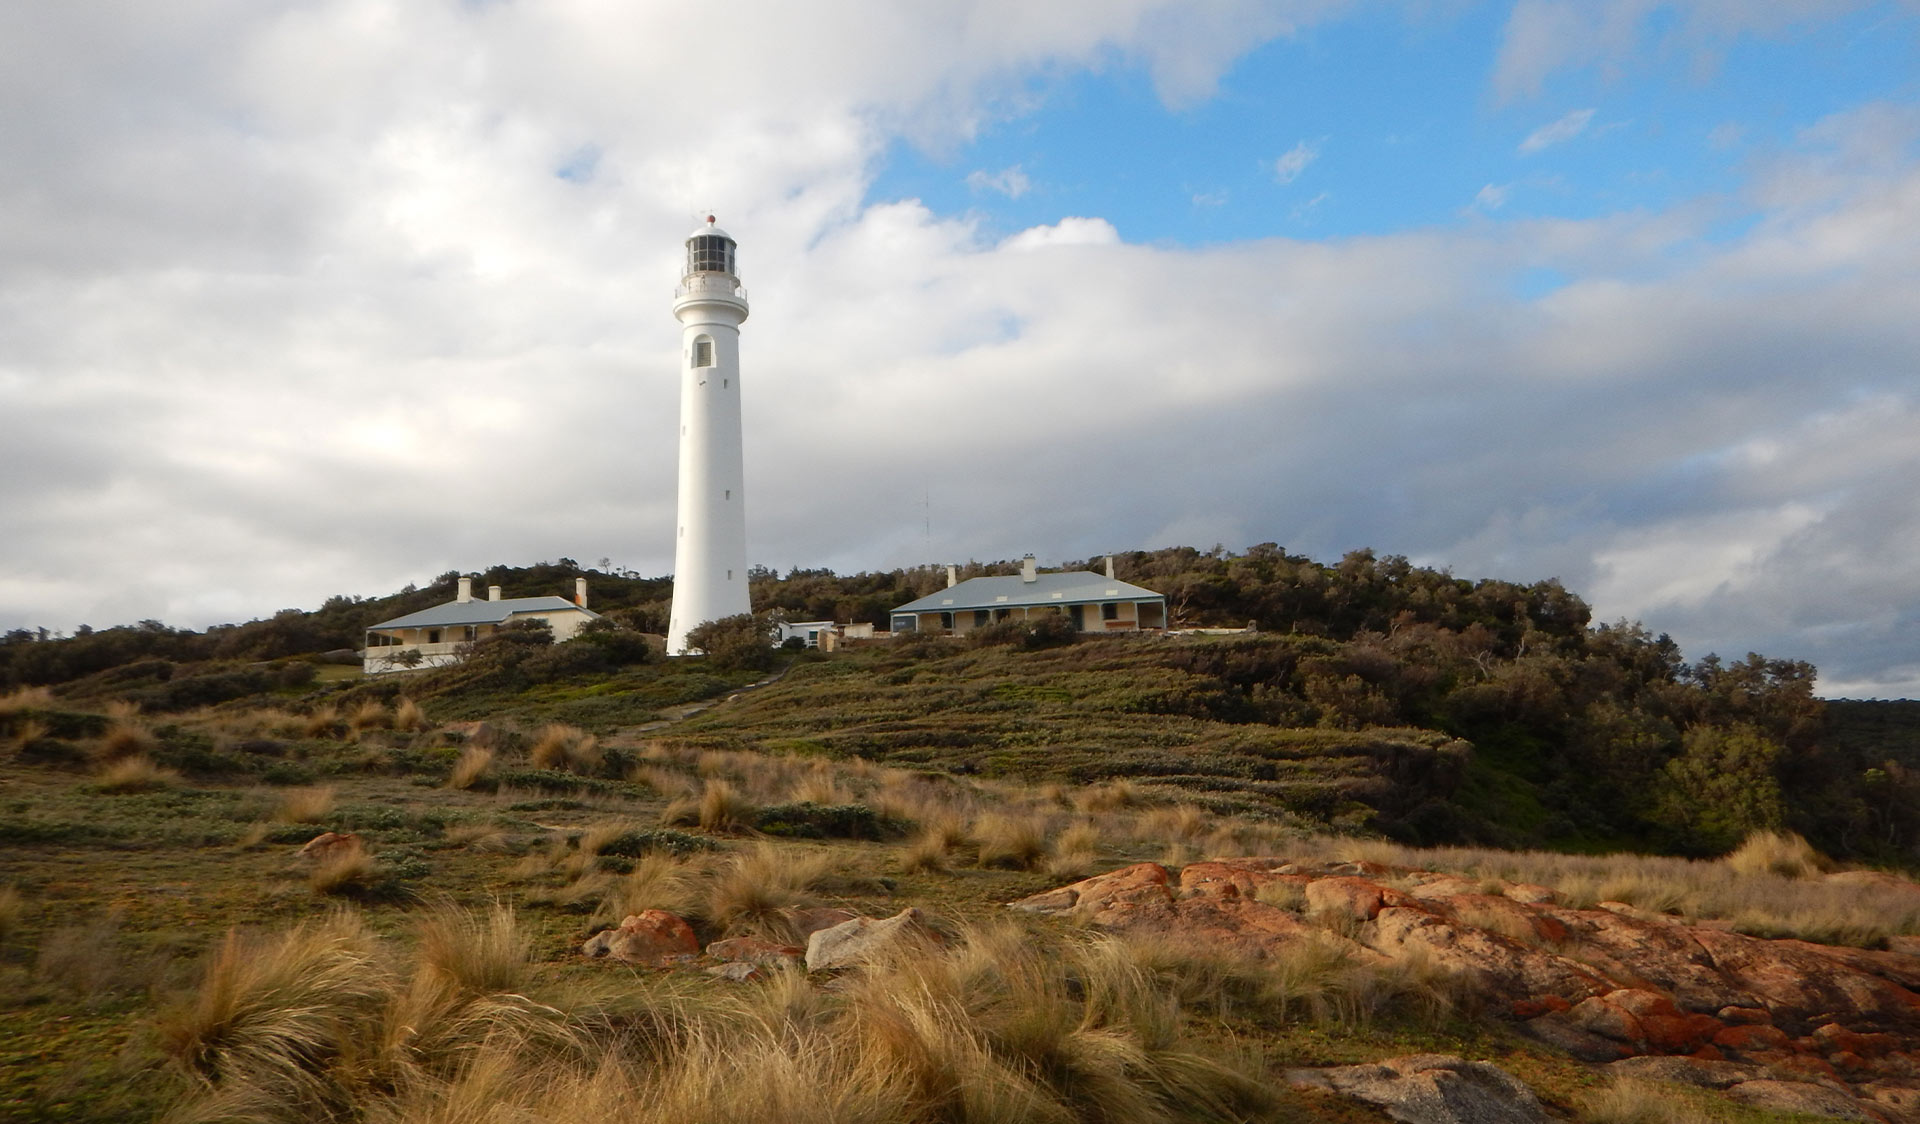 The lighthouse and cottages at Point Hicks at the Croajingolong National Park